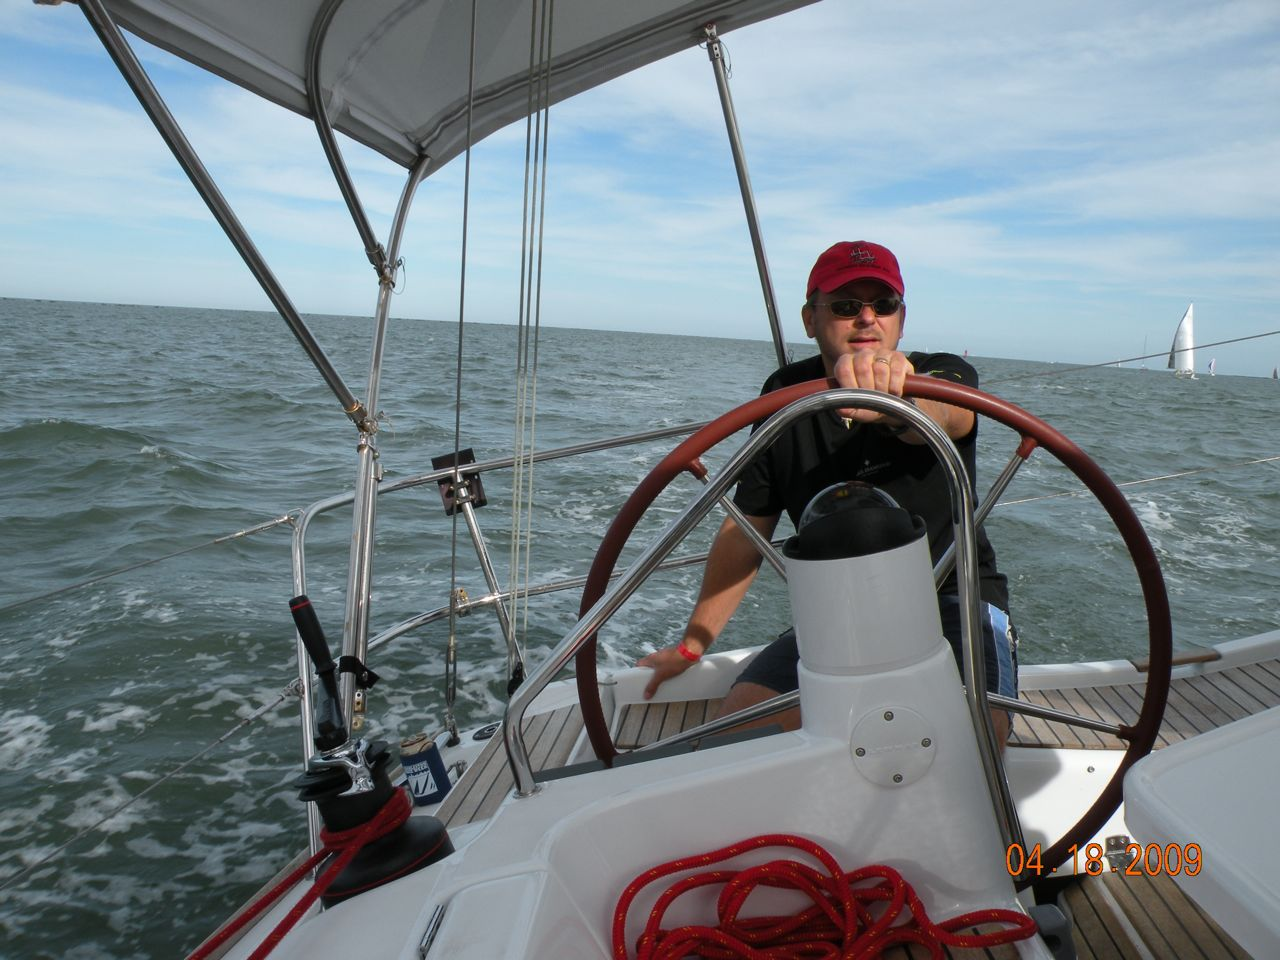 Ed helming from the leeward side. - (c) Copyright 2009